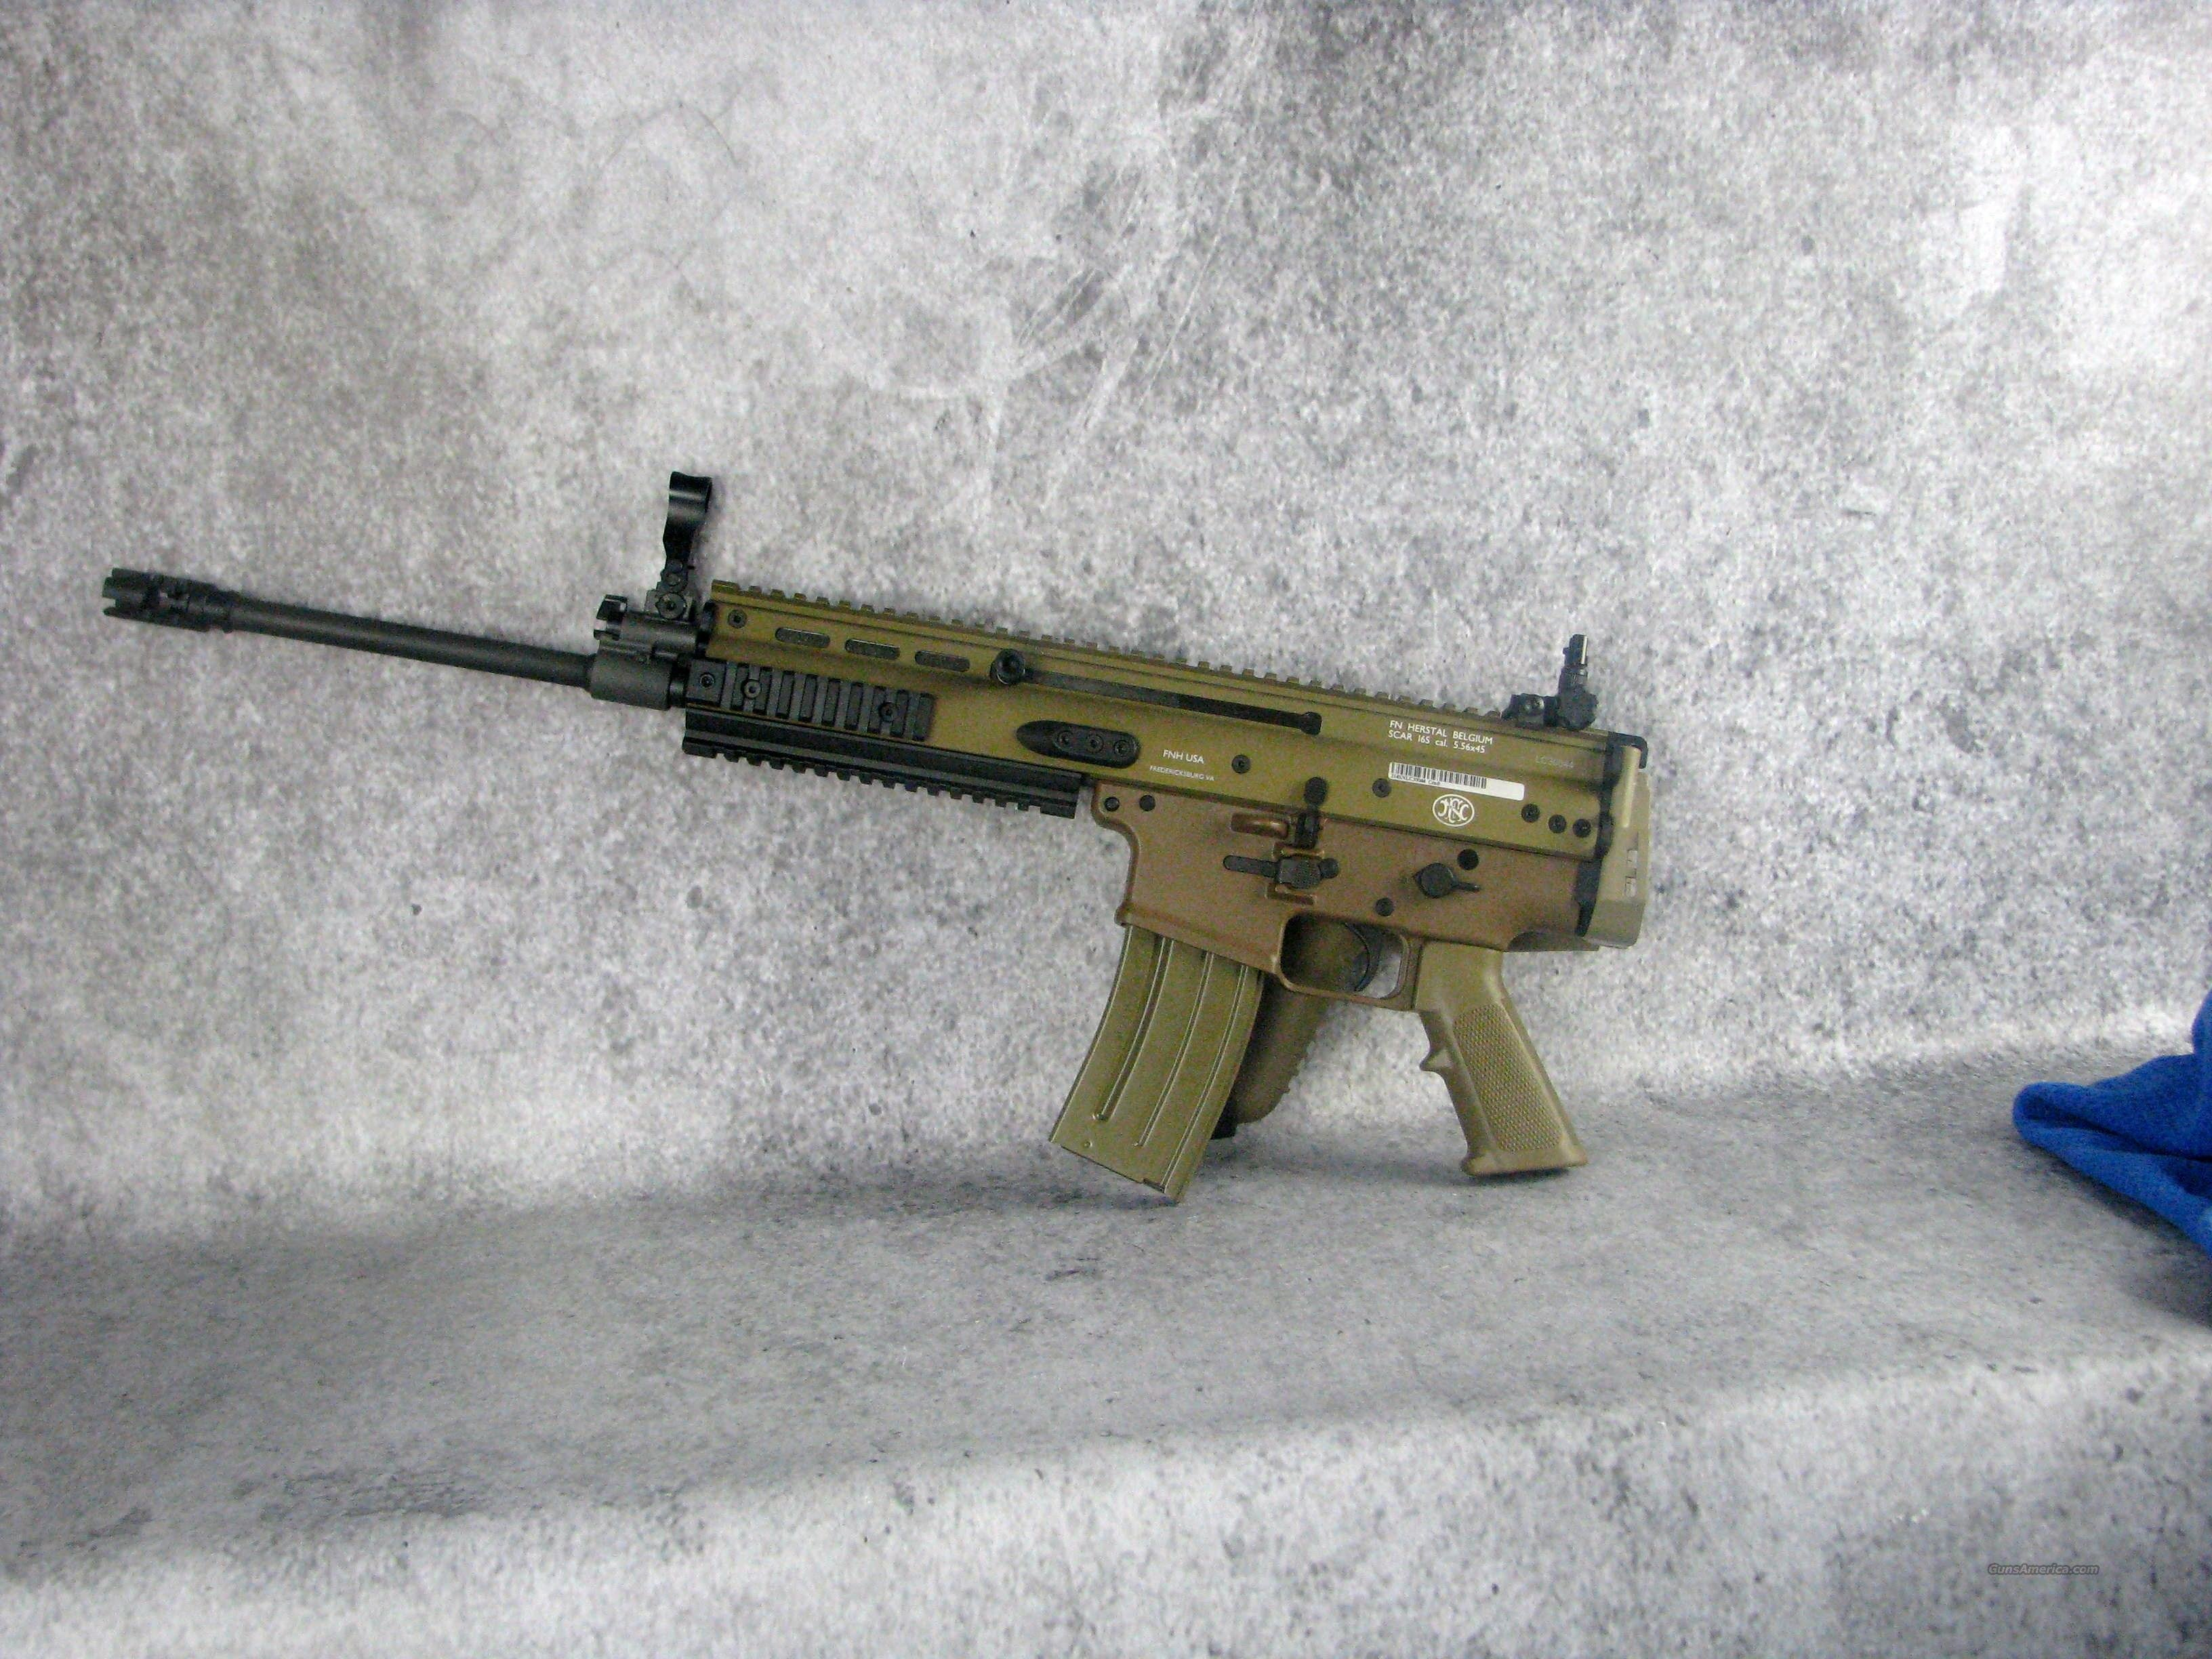 FNH FDE SCAR 16s 5.56mm NATO 98501  223 Rem 30 Rd  /EASY PAY $160 Monthly  Guns > Rifles > FNH - Fabrique Nationale (FN) Rifles > Semi-auto > Other